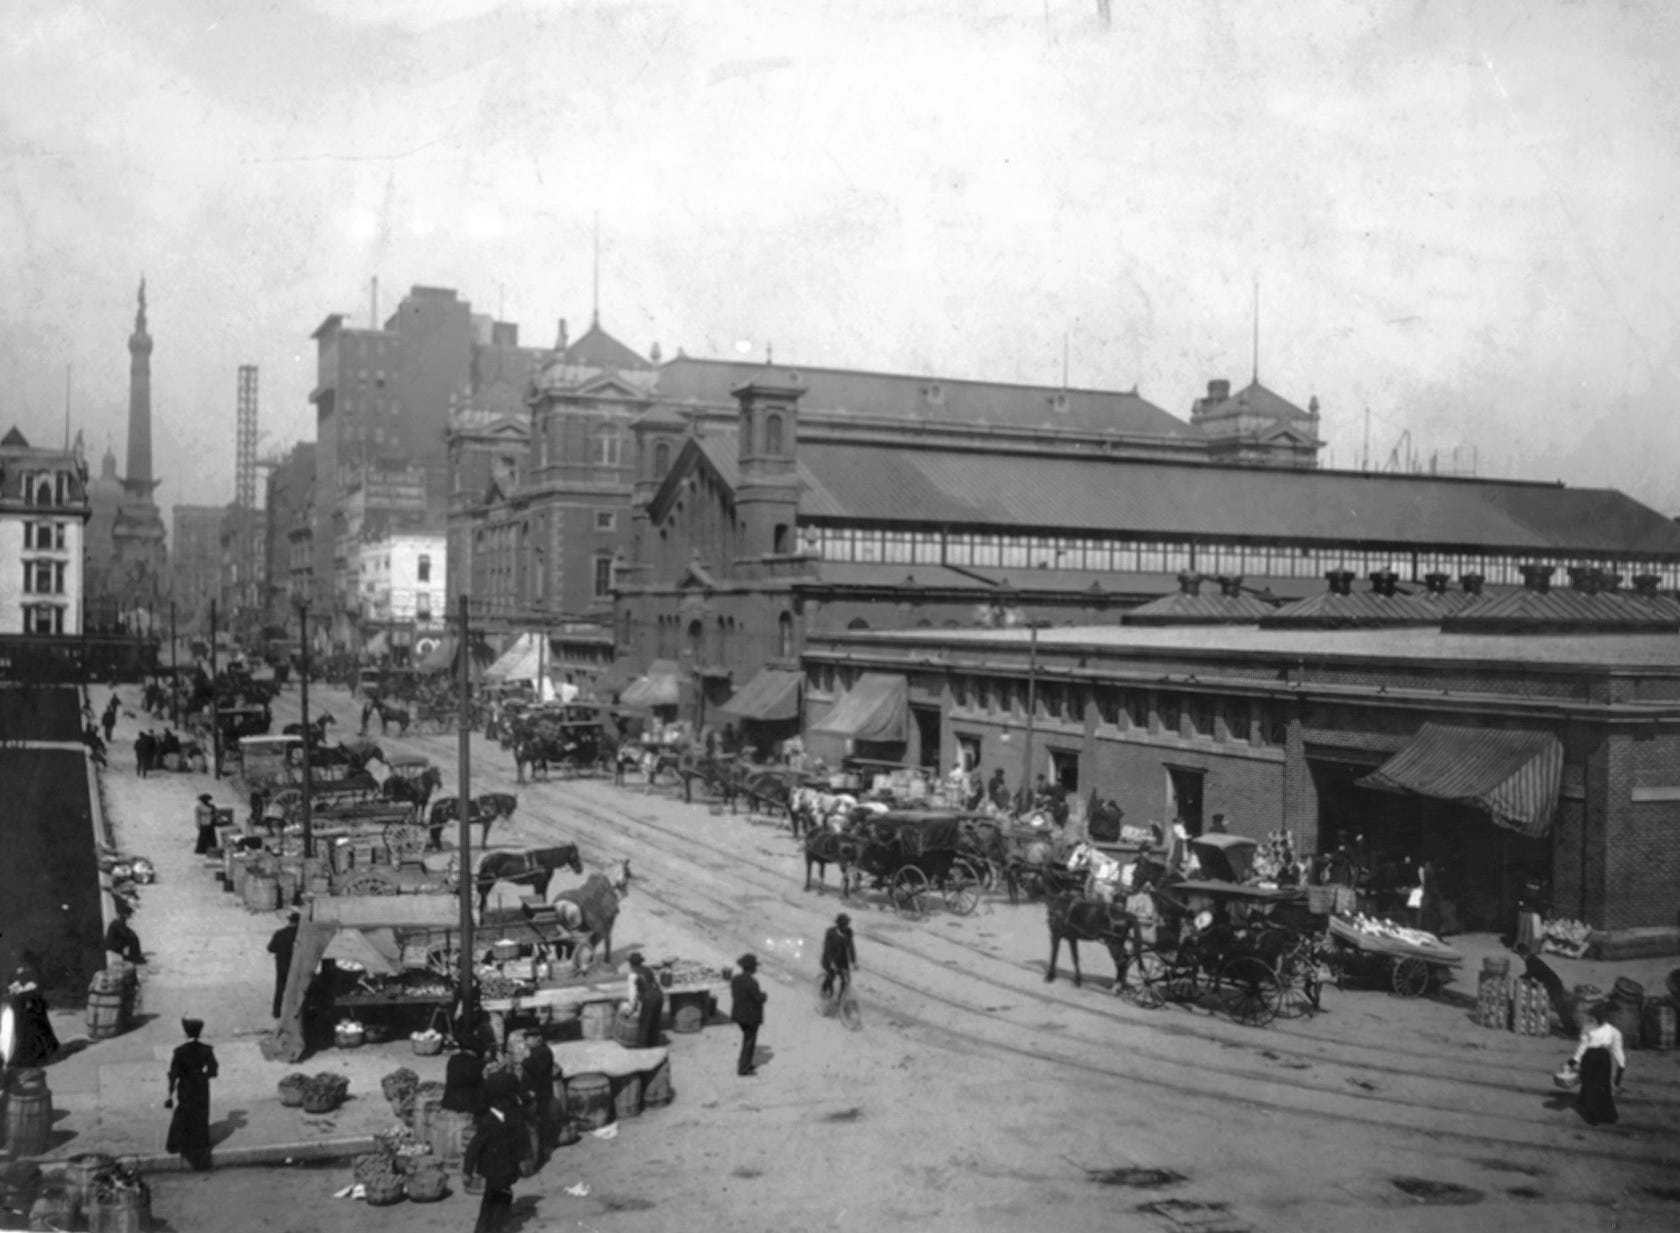 City Market in view looking northwest on Market Street (from Alabama) circa 1906. Farmers and their horse and wagons peddle produce from the street.